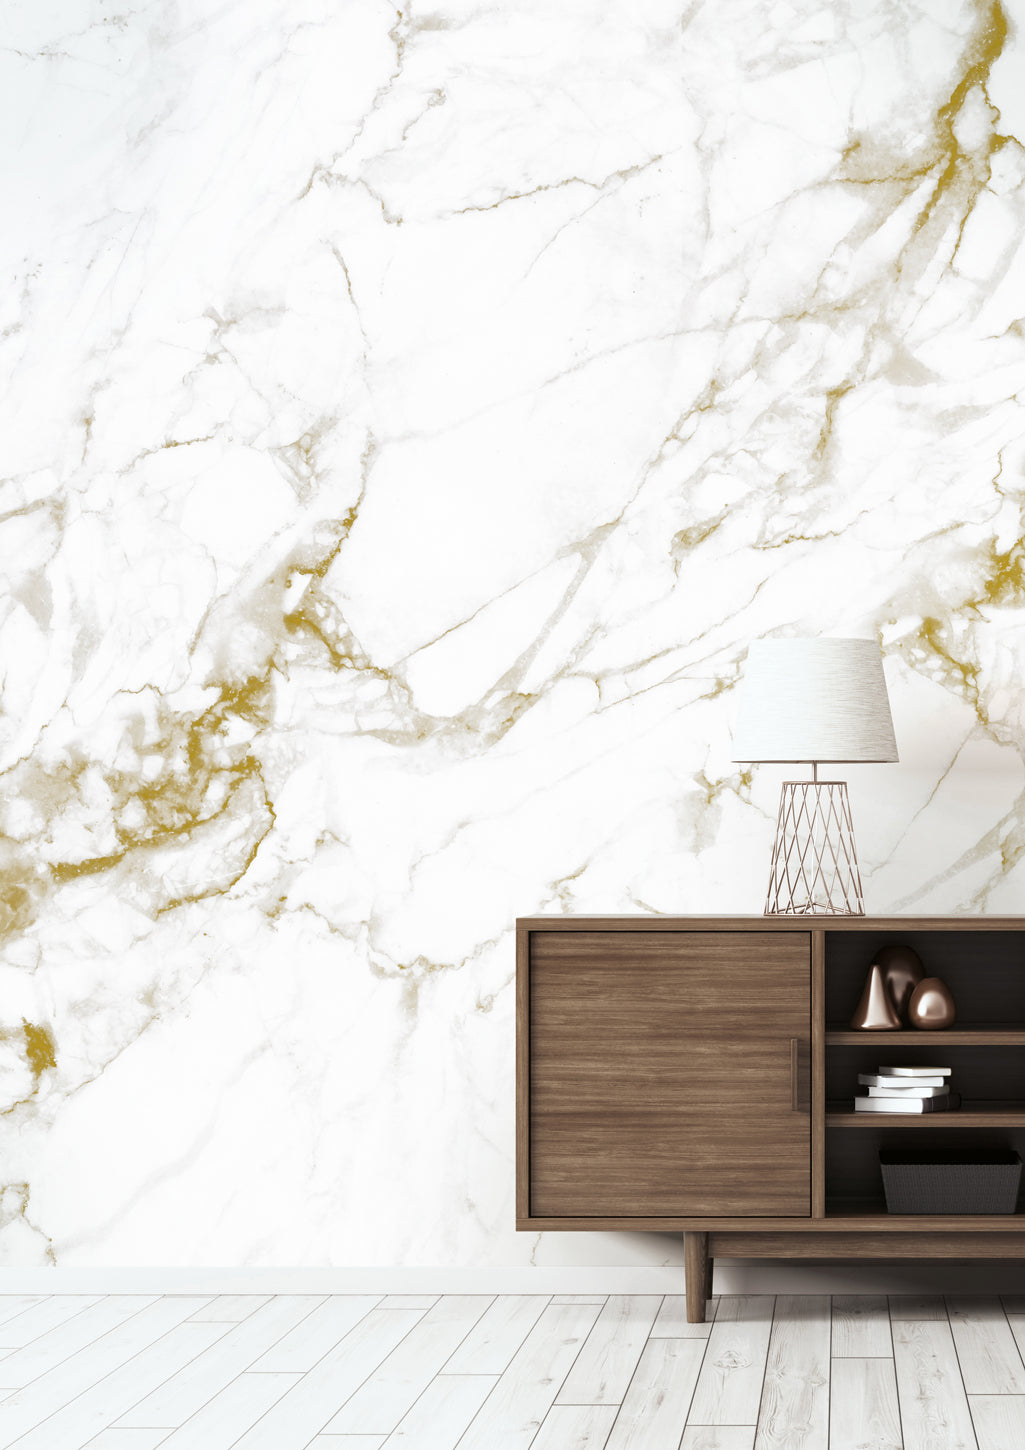 Marble White Gold 554 Wall Mural By Kek Amsterdam Burke Decor